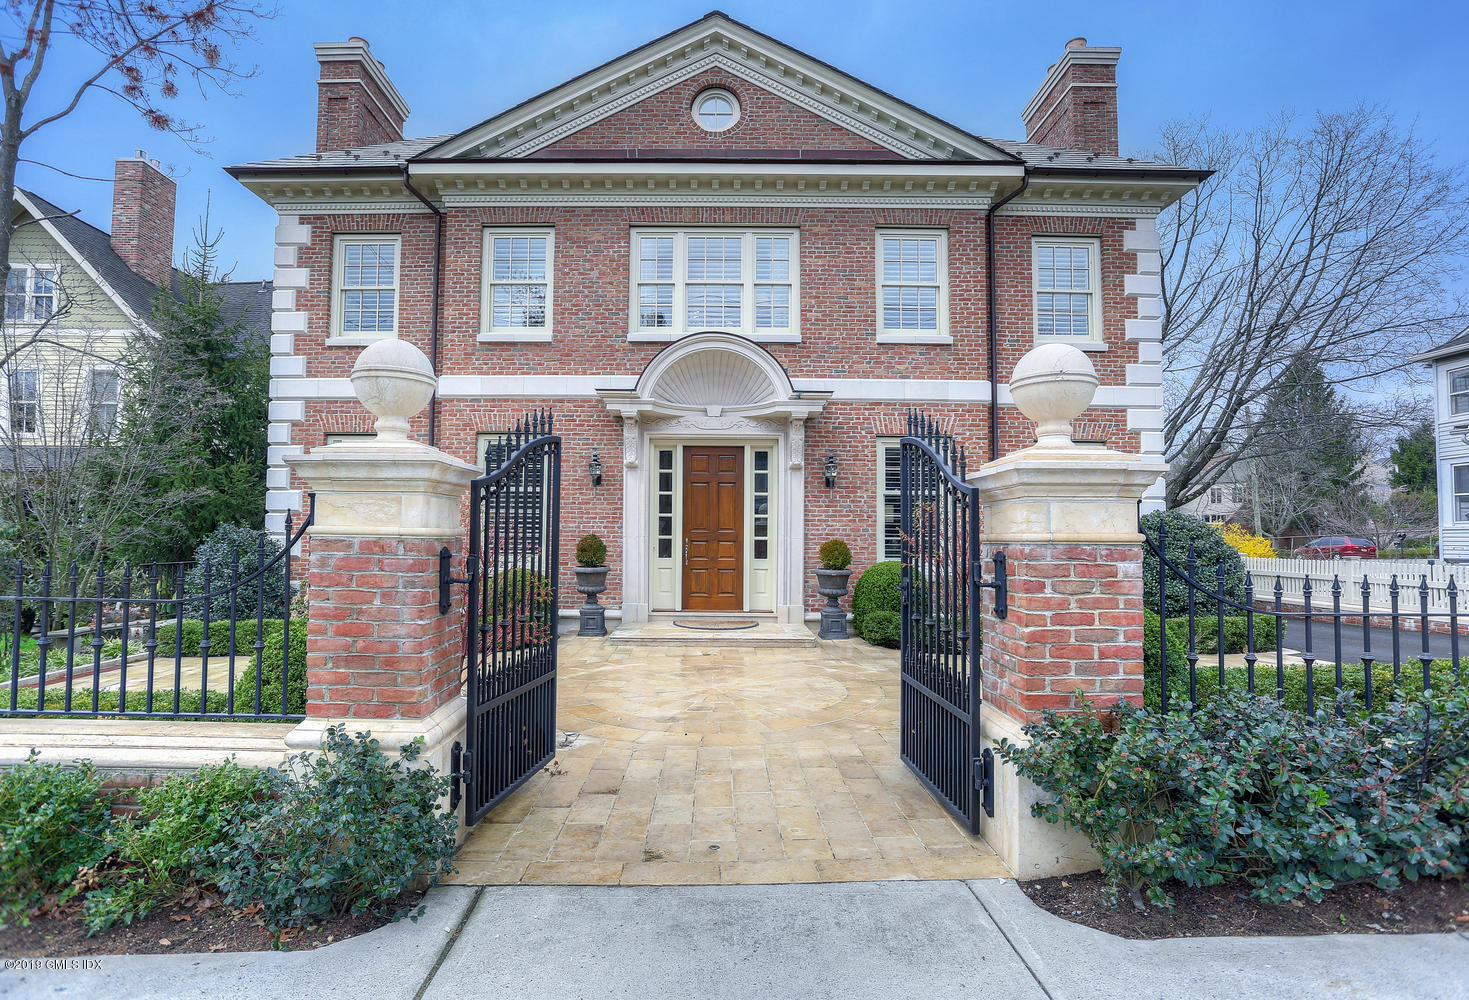 172 Milbank Avenue,Greenwich,Connecticut 06830,4 Bedrooms Bedrooms,3 BathroomsBathrooms,Condominium,Milbank,105397